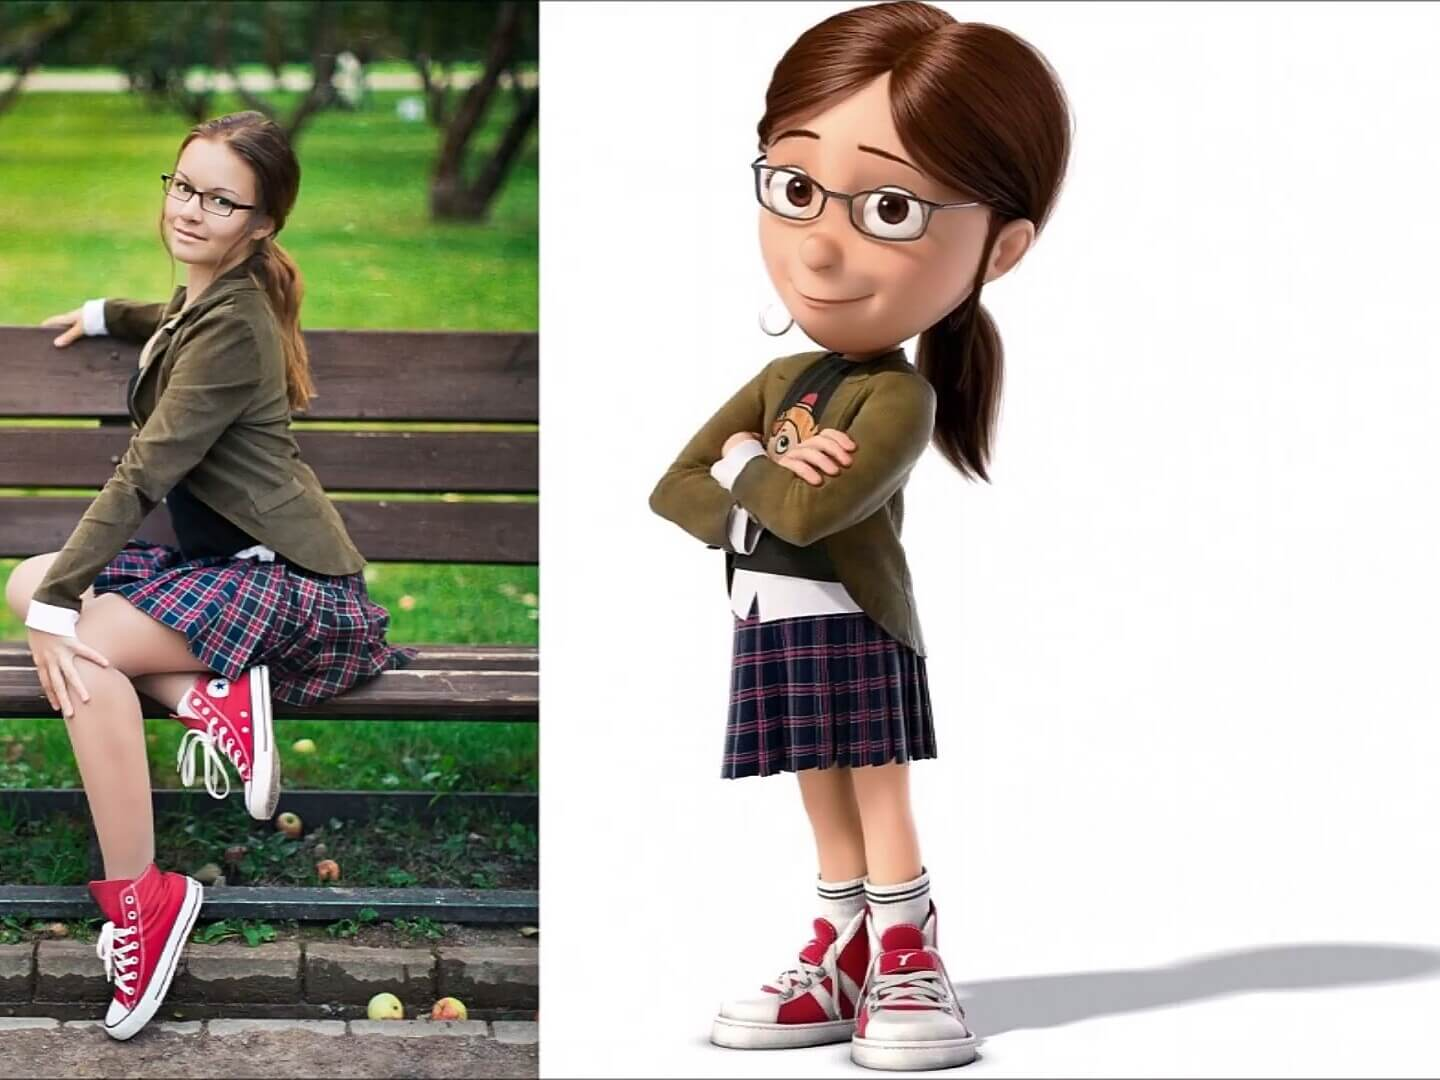 20 Amazing Cosplays That Look Extremely Similar To The Original Cartoons - Look at the eldest foster girl from Gru!